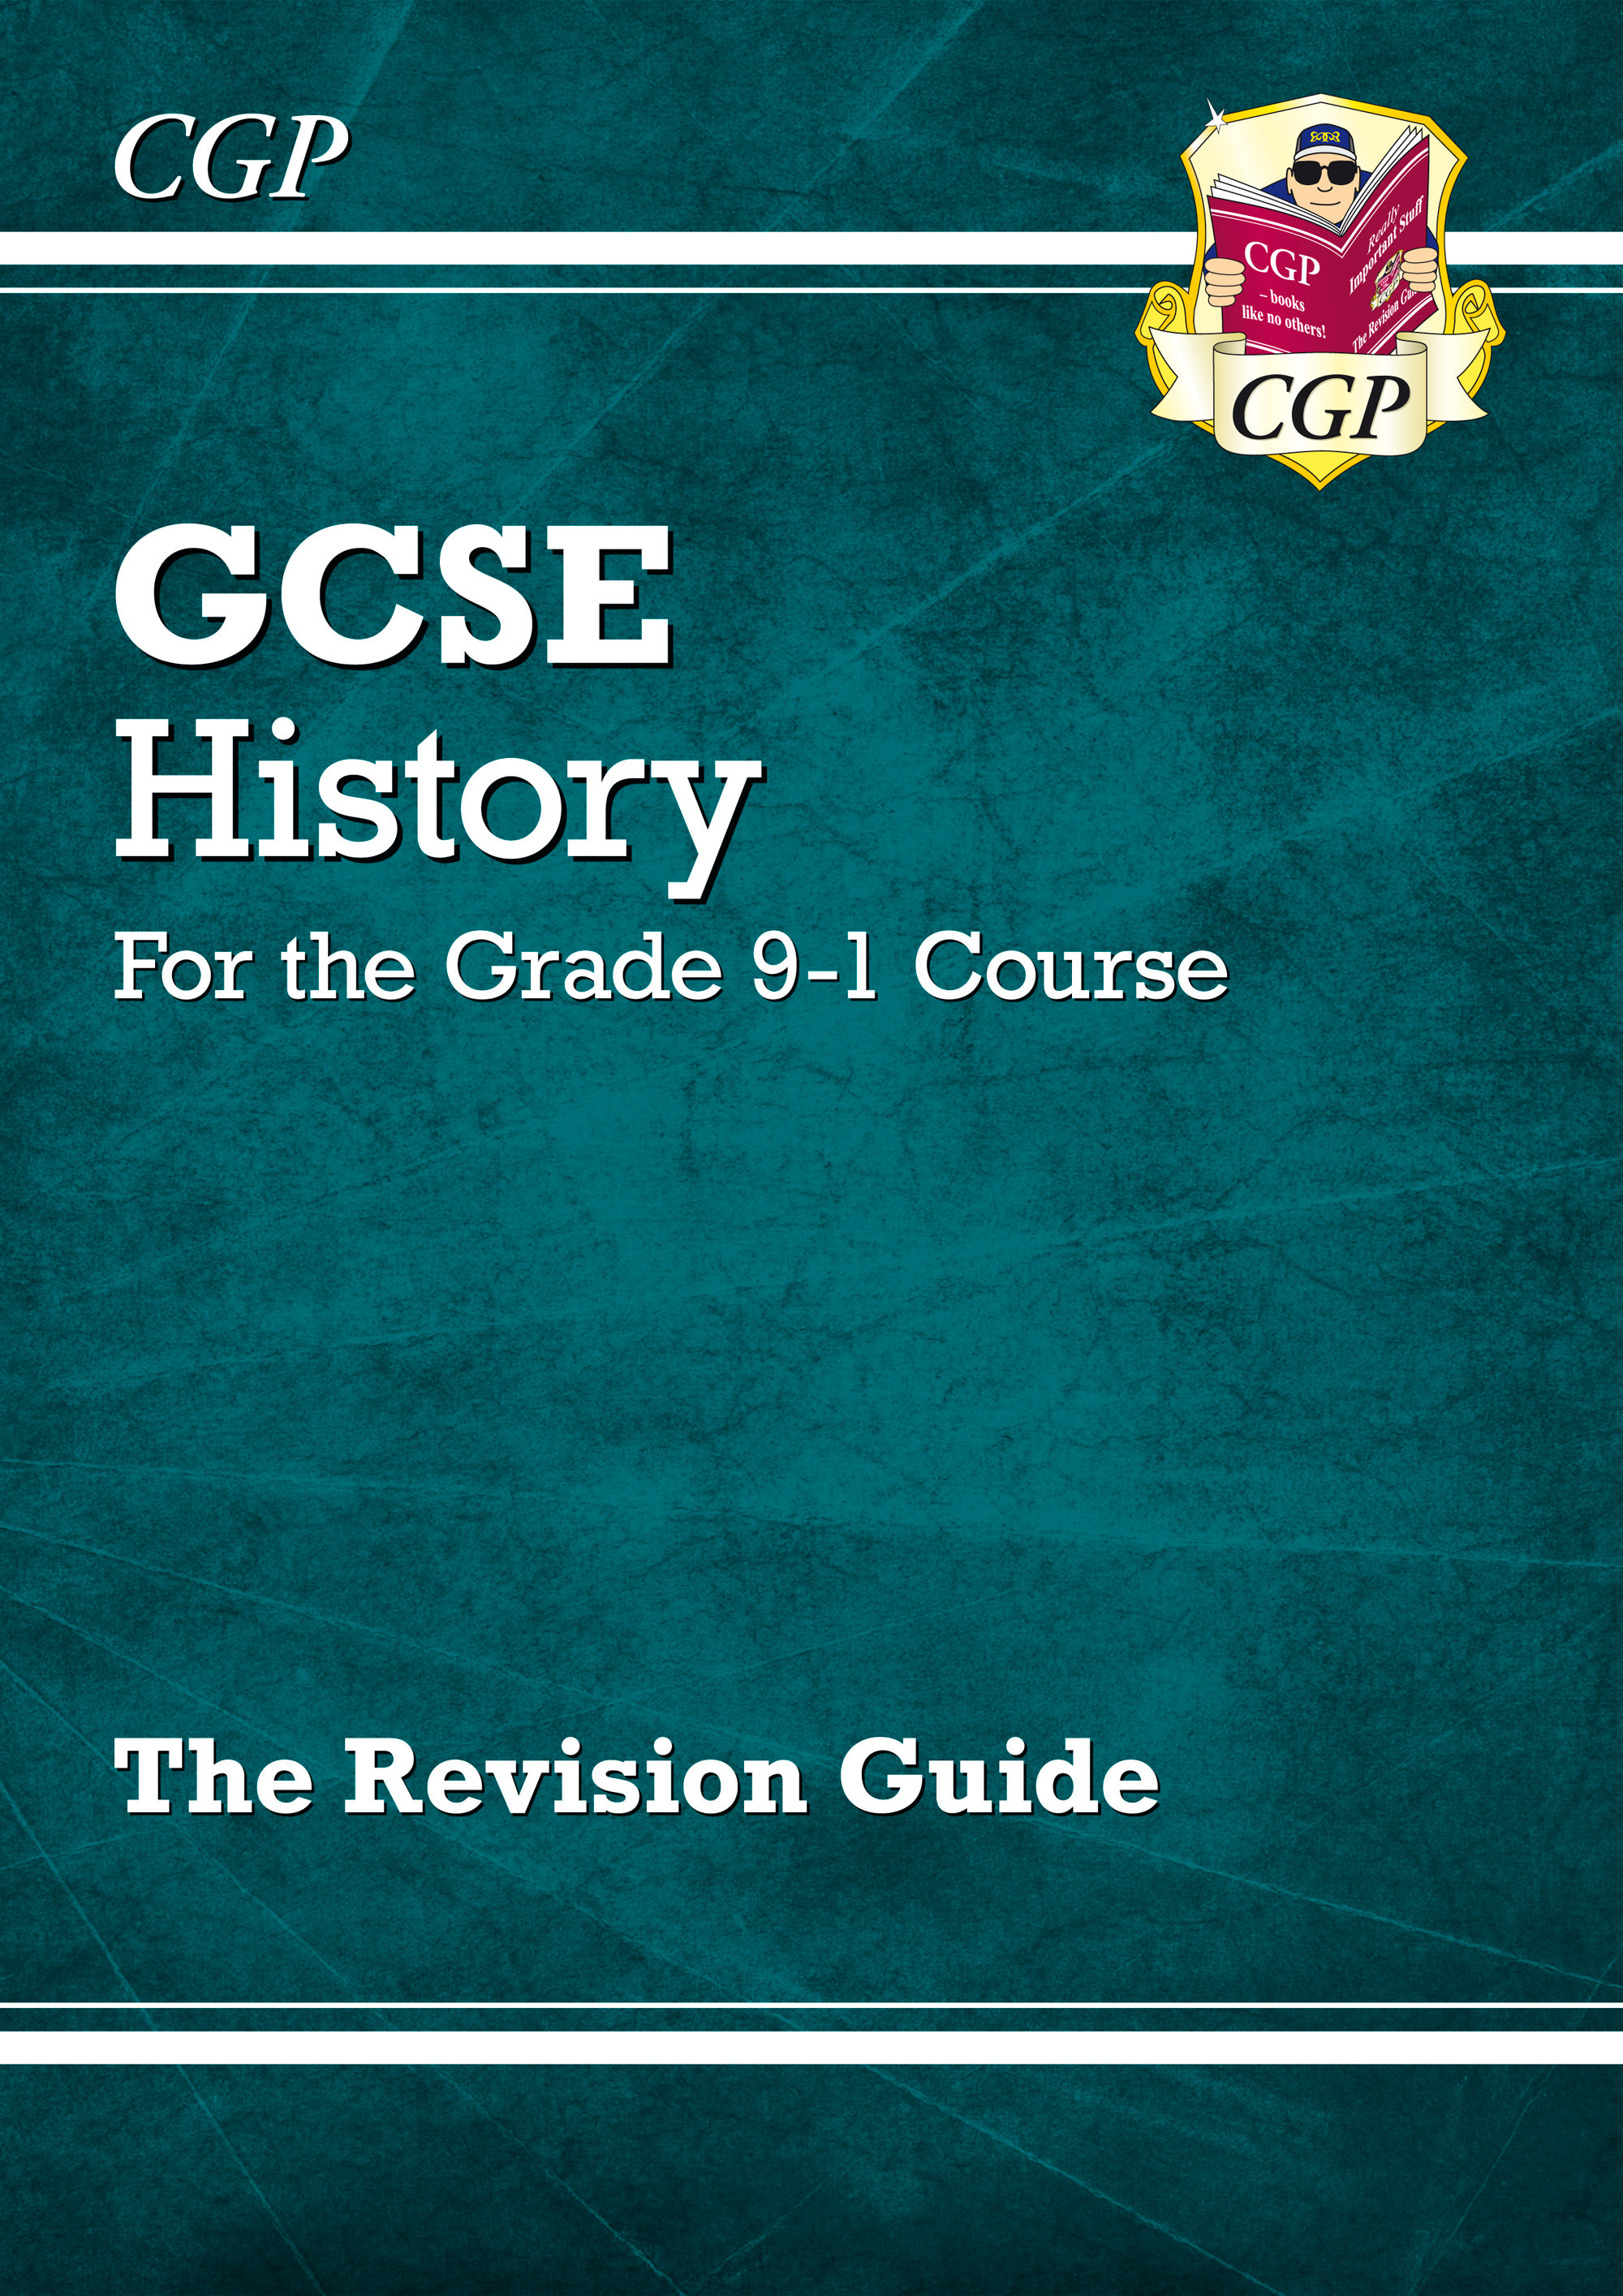 HHR41 - New GCSE History Revision Guide - for the Grade 9-1 Course